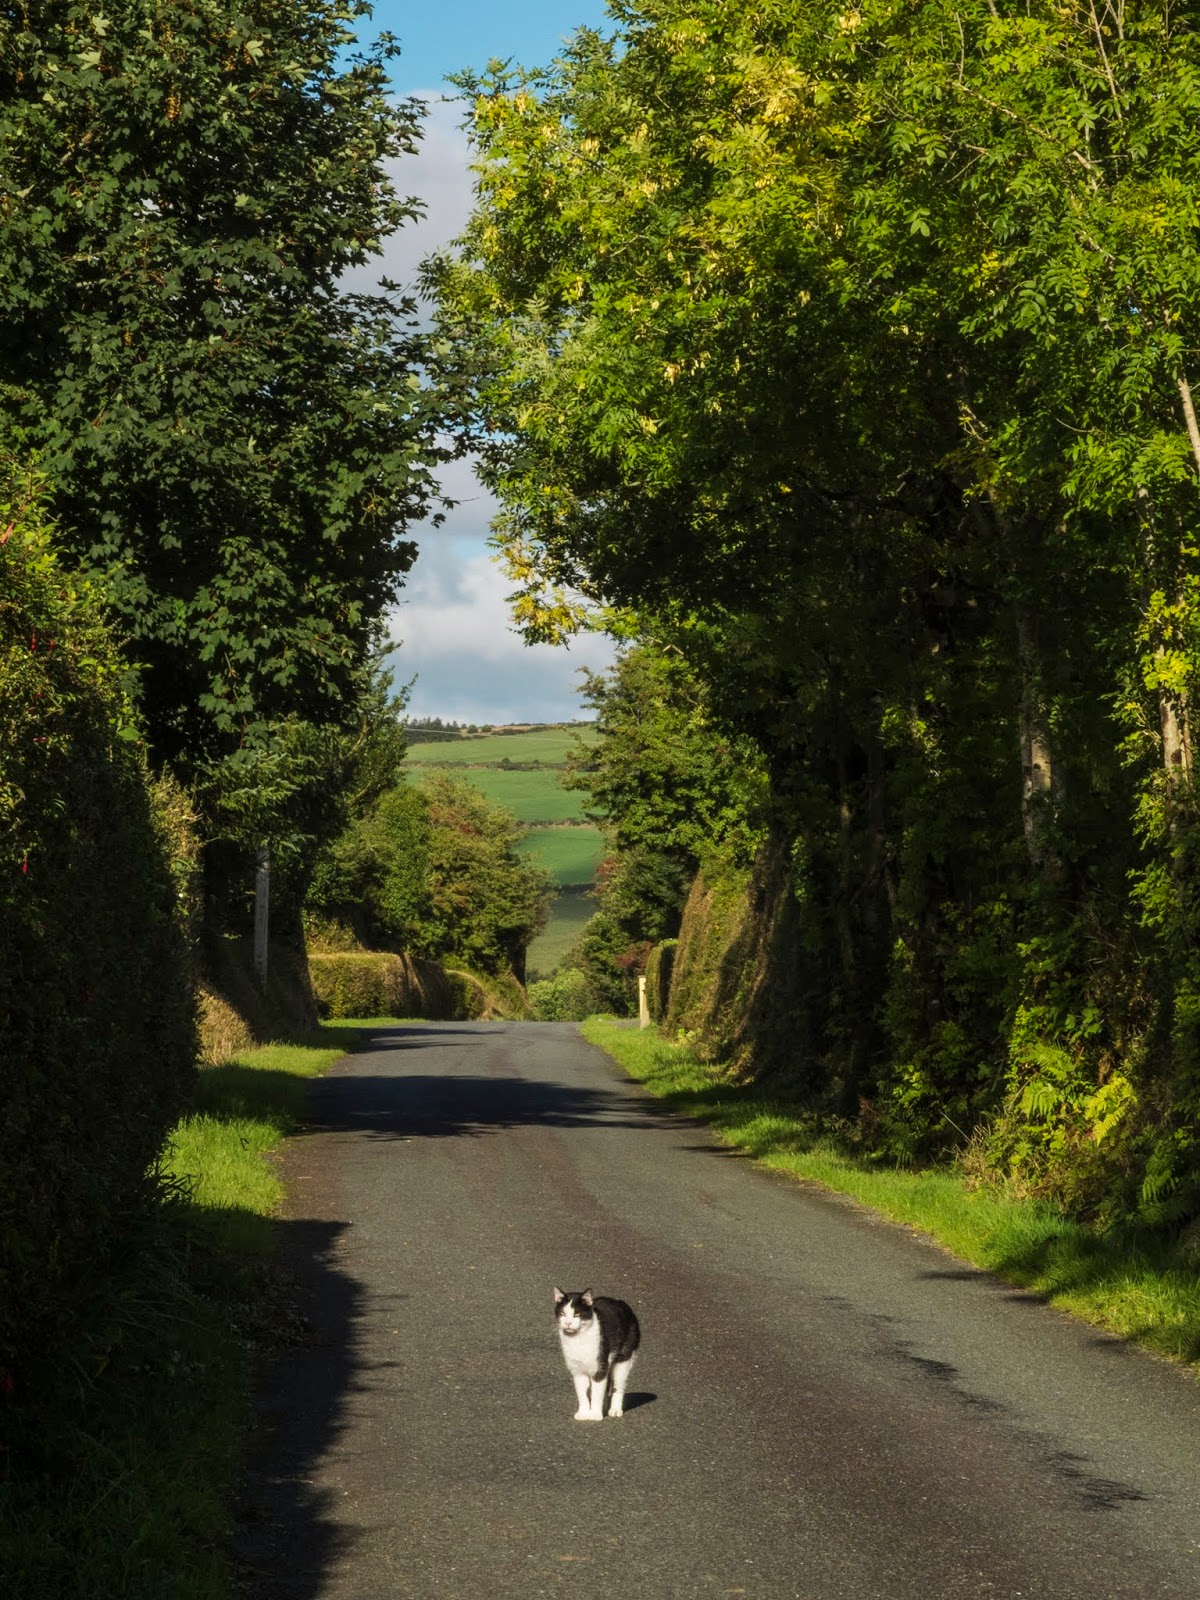 A black and white cat standing in the middle of a county tree tunneled road on a sunny day.